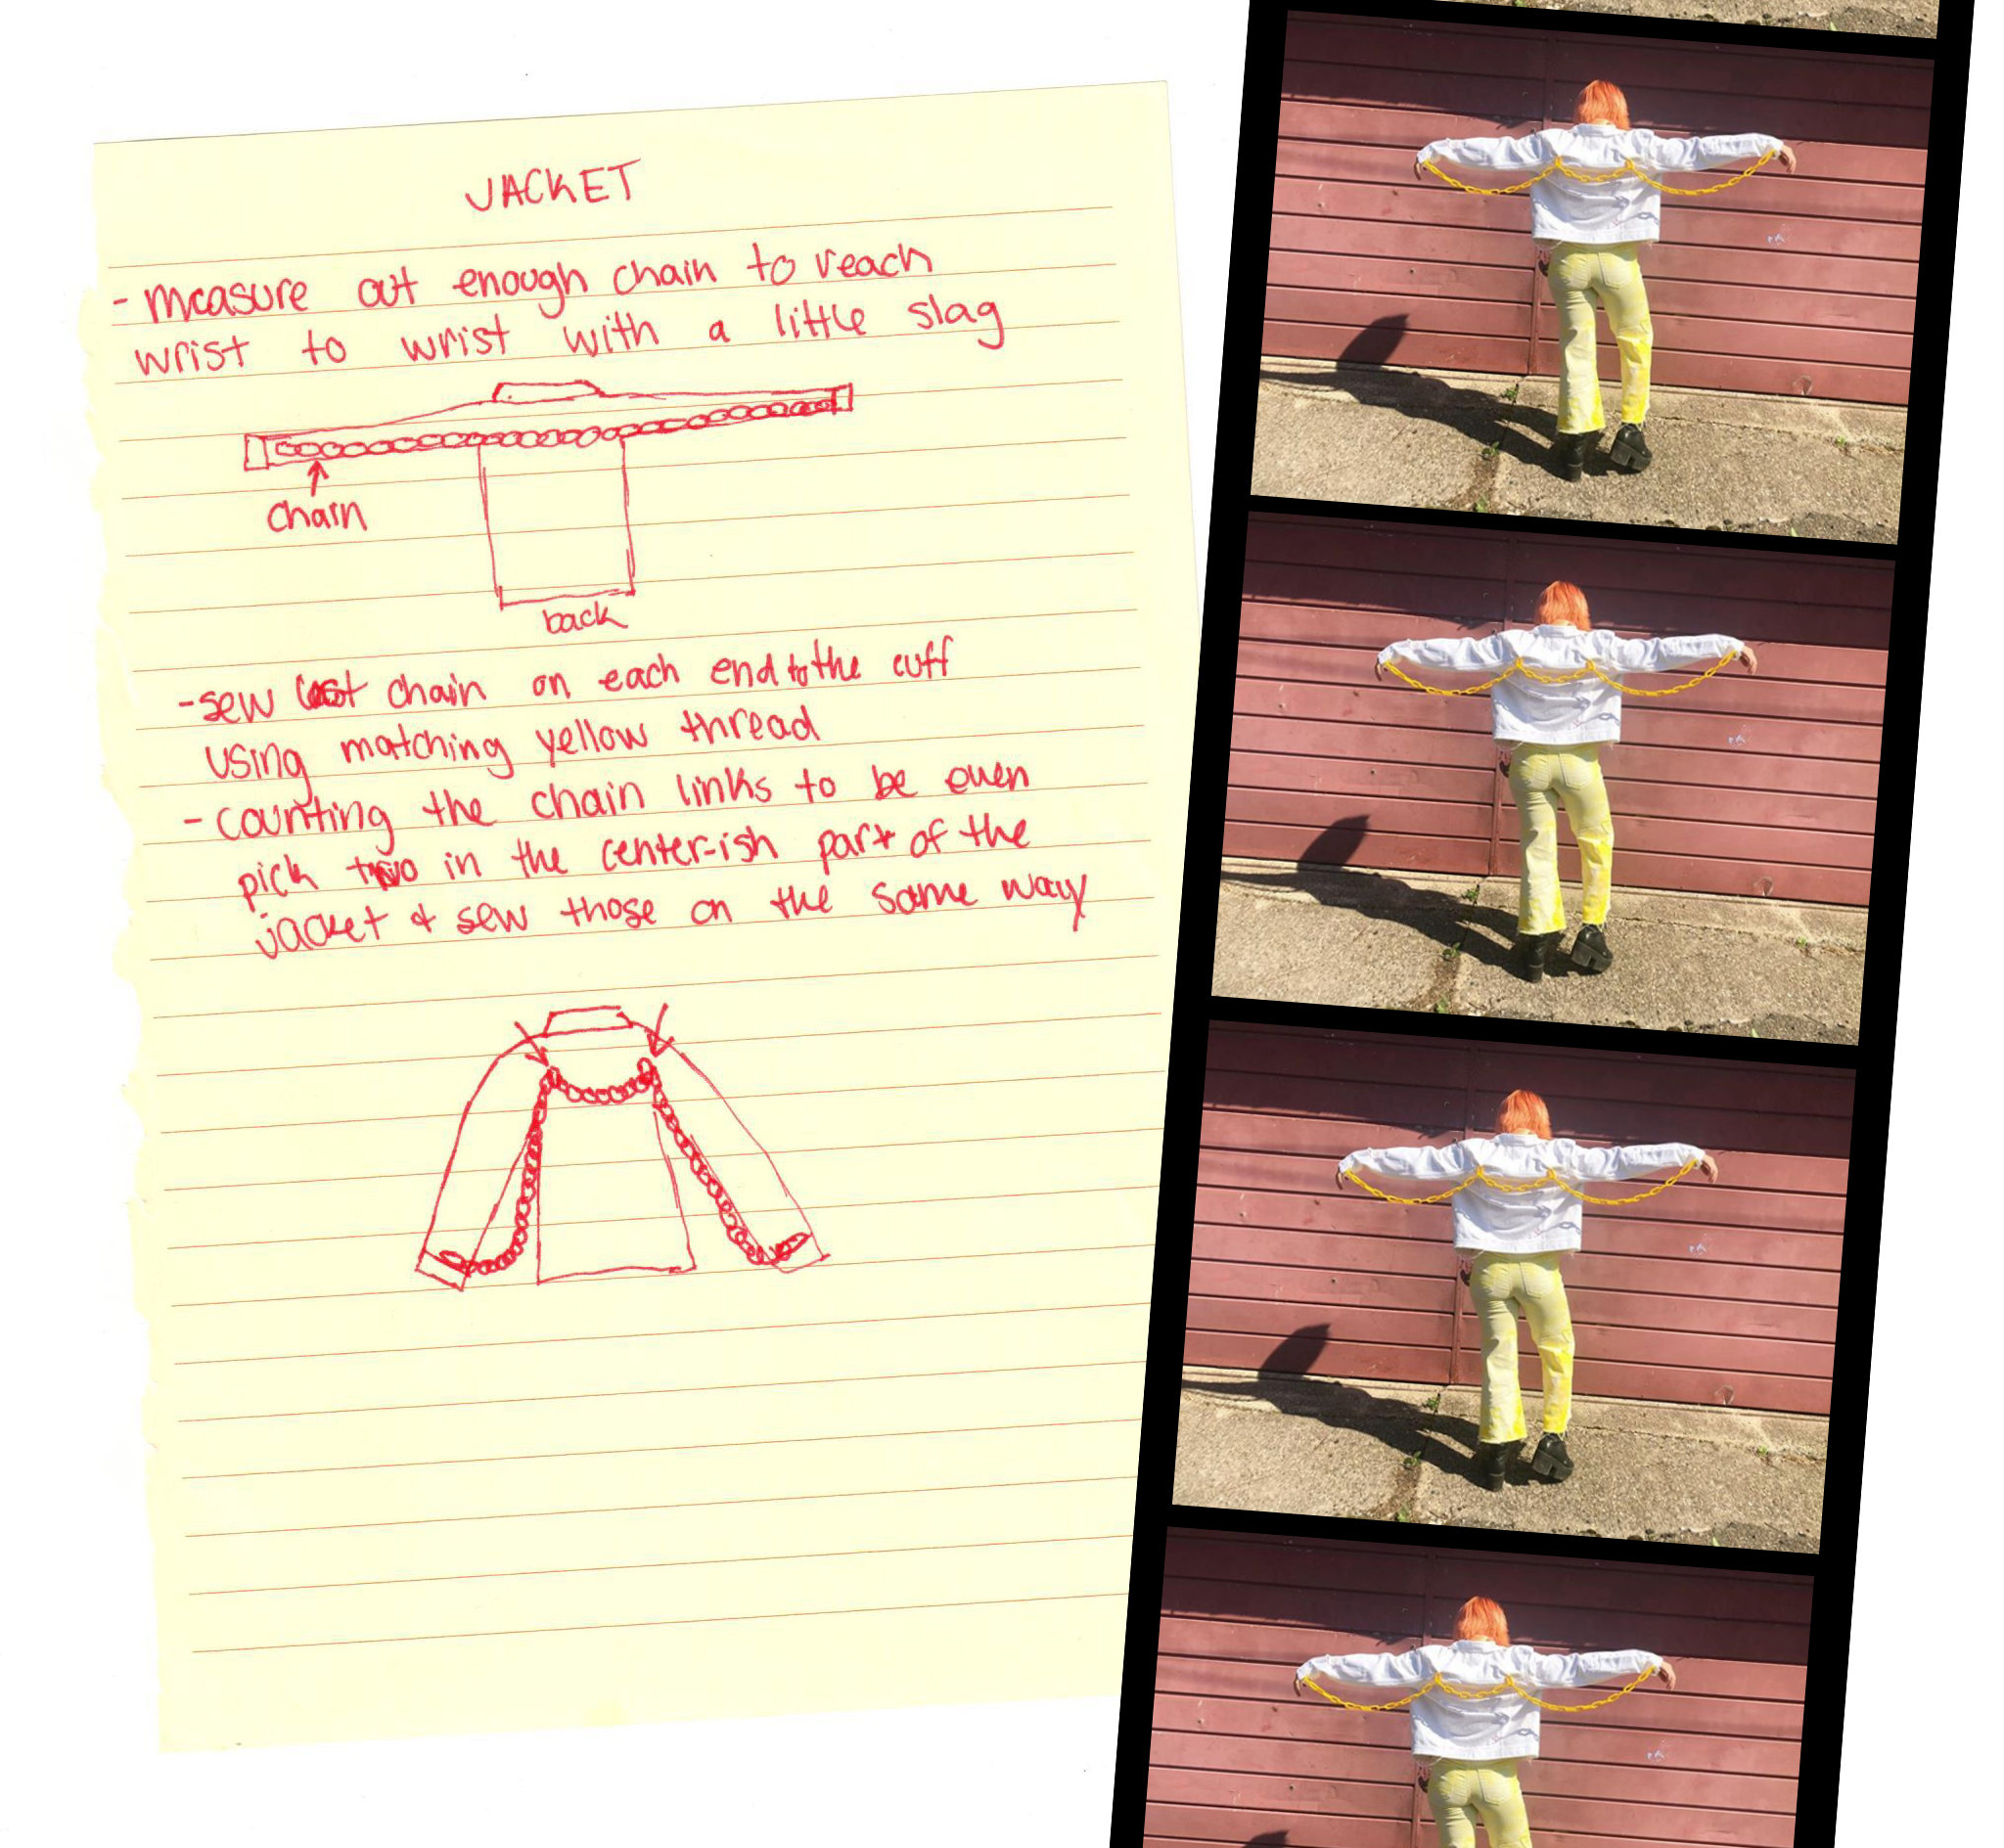 handwritten instructions for Prizzcilla's customized chain jacket